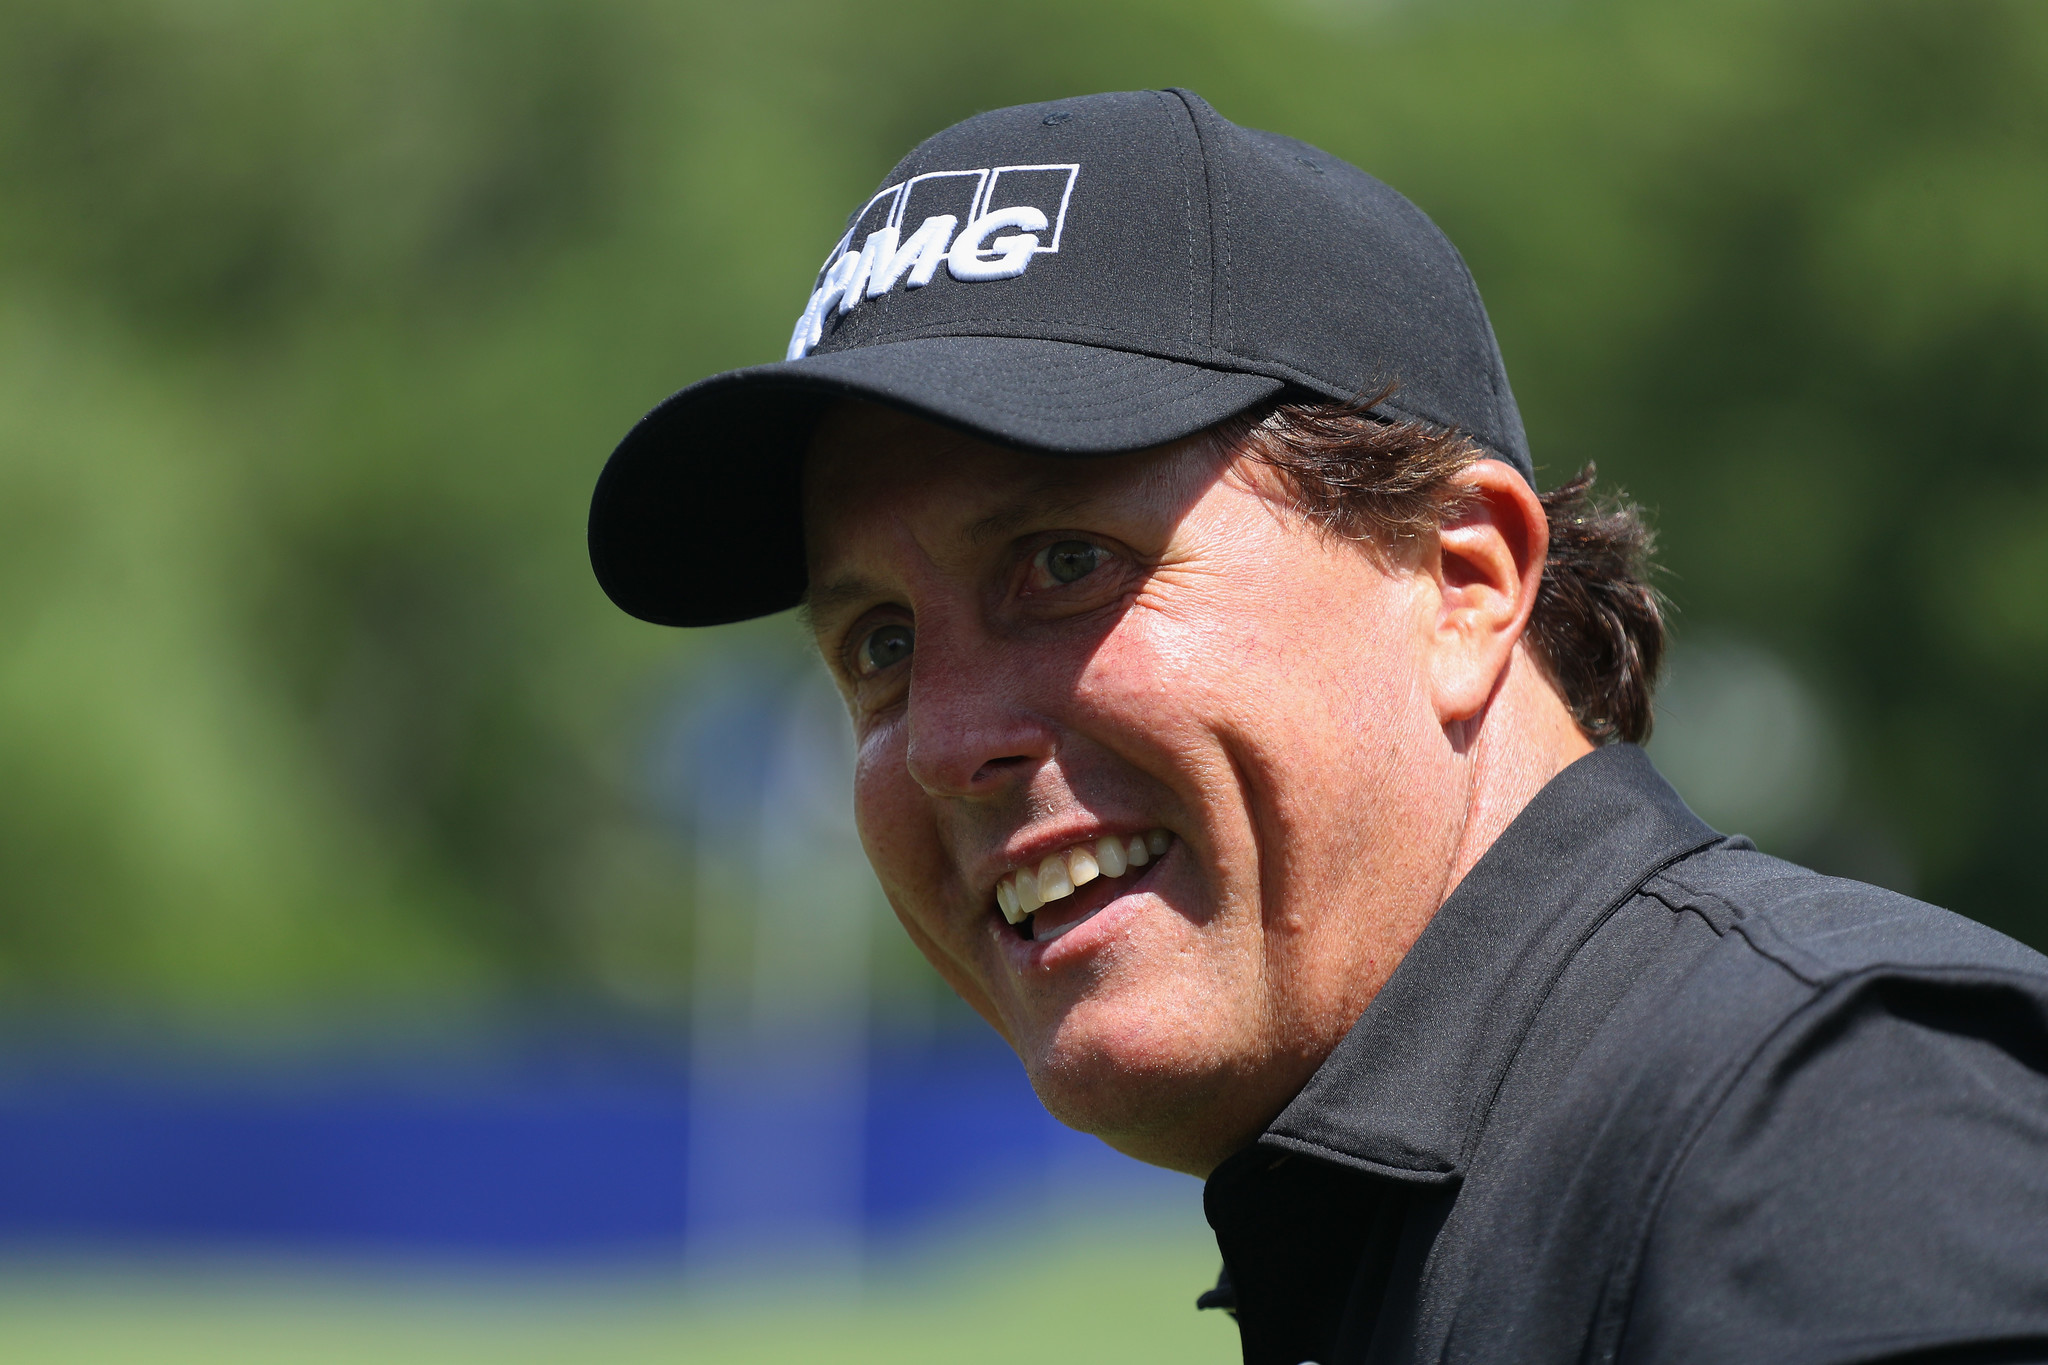 phil mickelson - photo #27